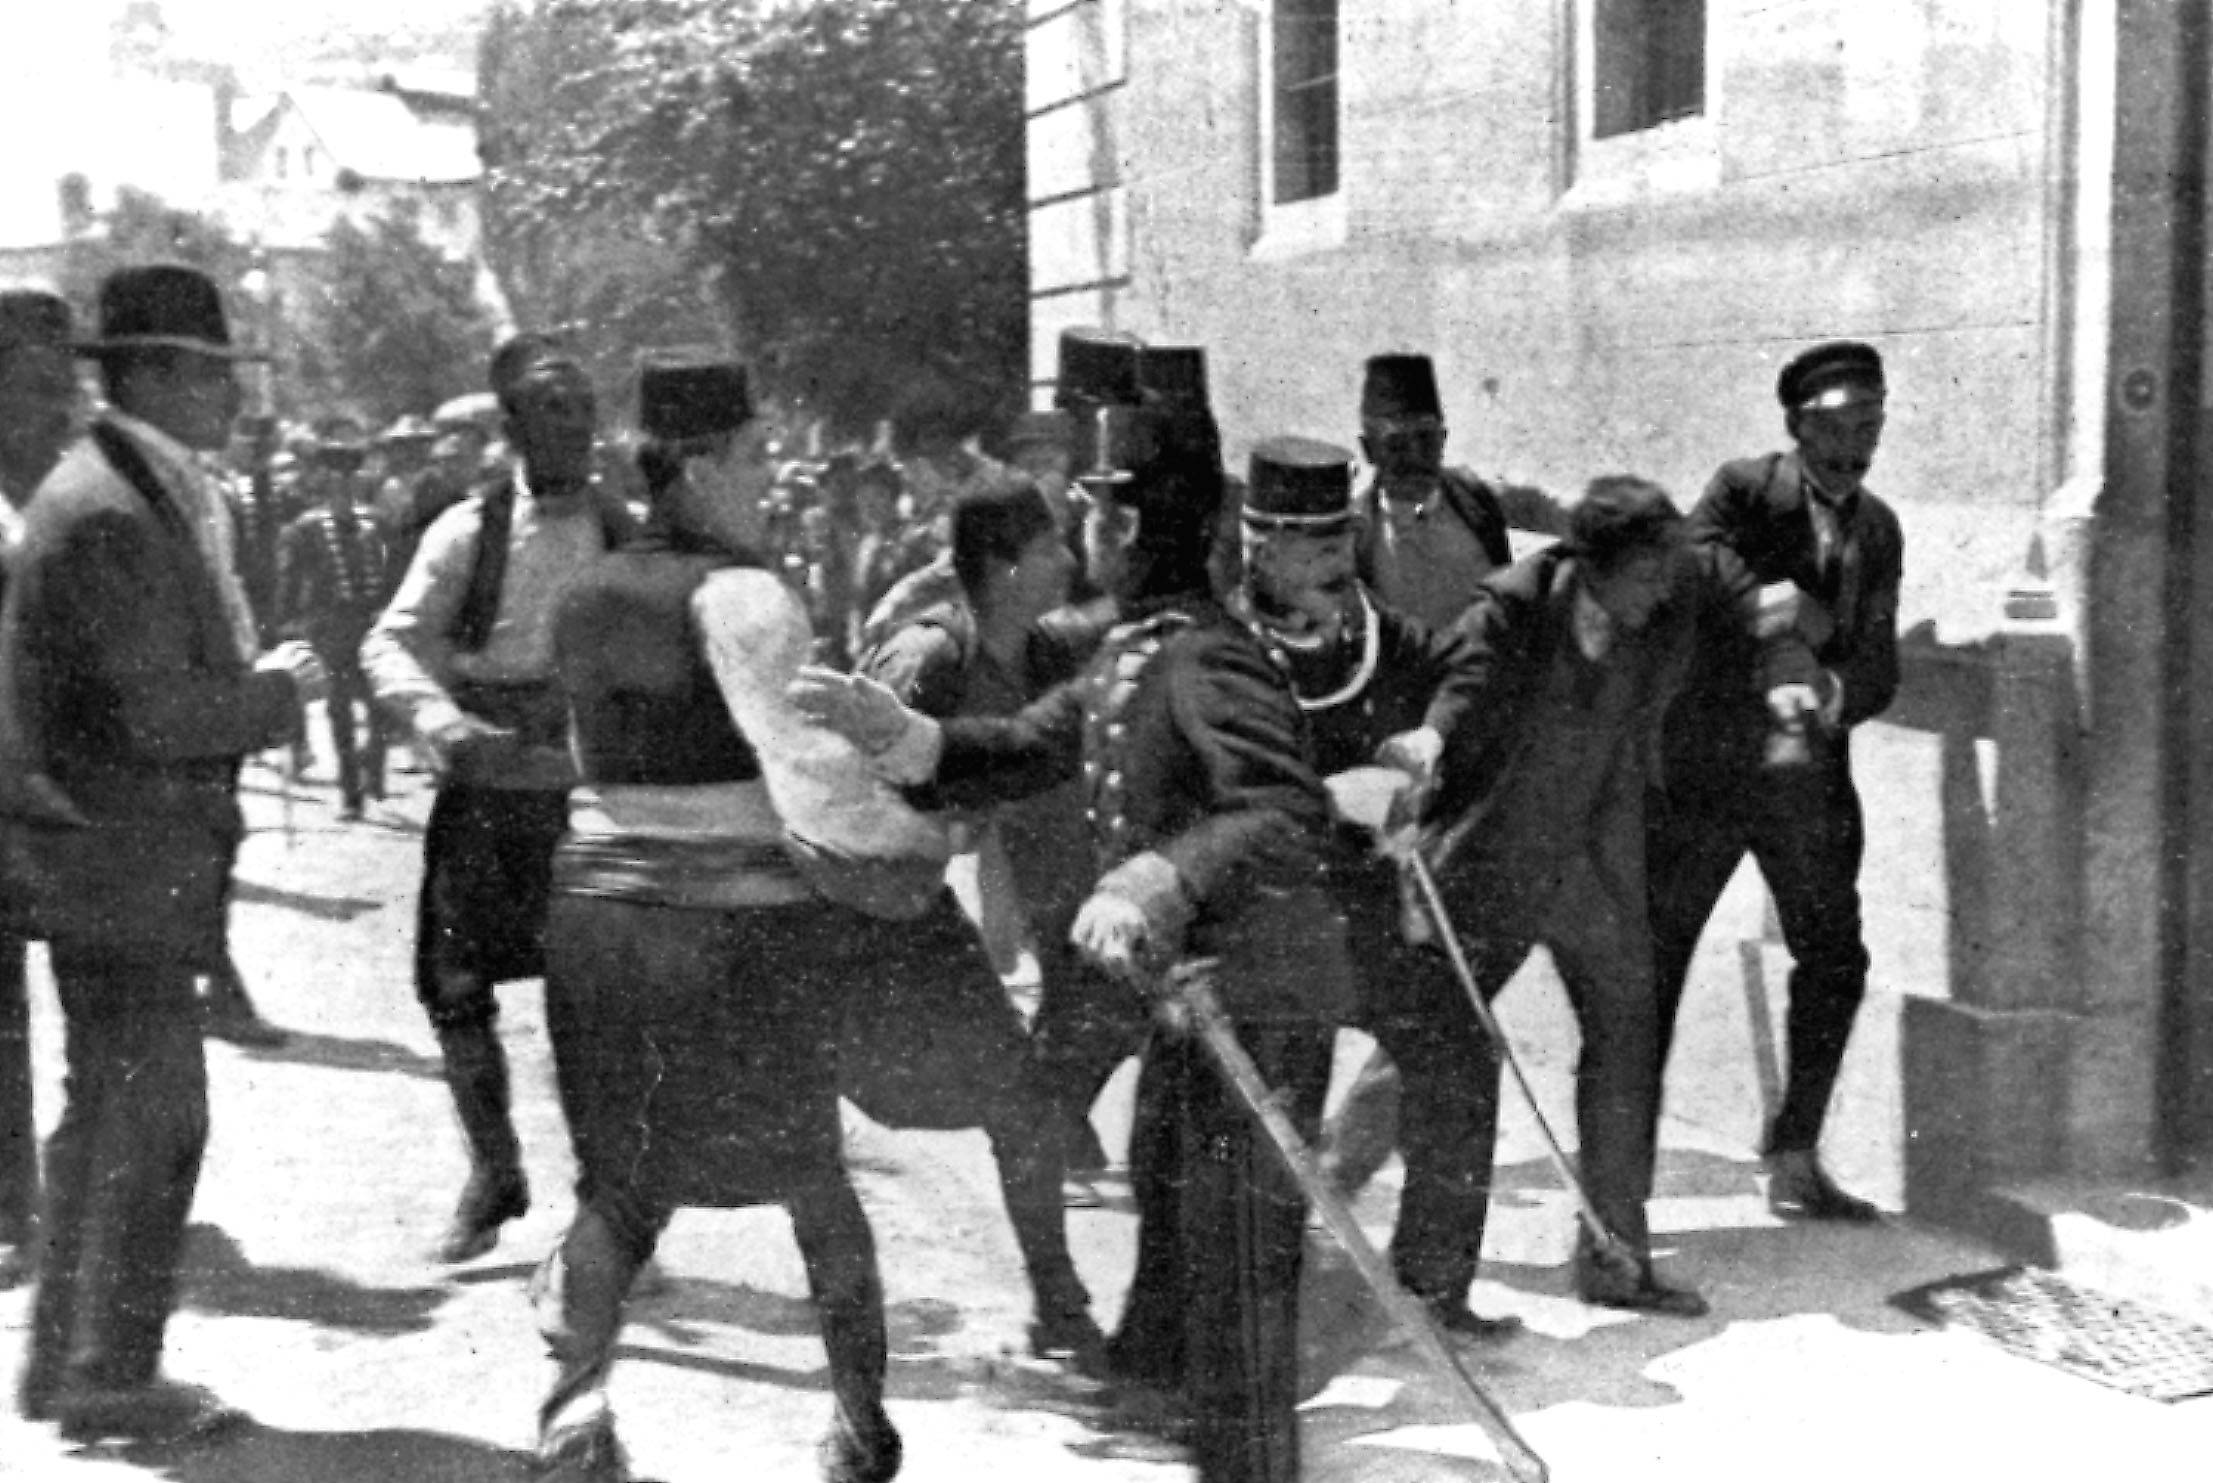 TWO OF 100: In this June 28, 1914 file photo, a suspect, second right, is captured by police in Sarajevo, Yugoslavia. Princip fired the shots that assassinated Archduke Franz Ferdinand, heir to the Austrian-Hungarian throne, and his wife, Sophie.